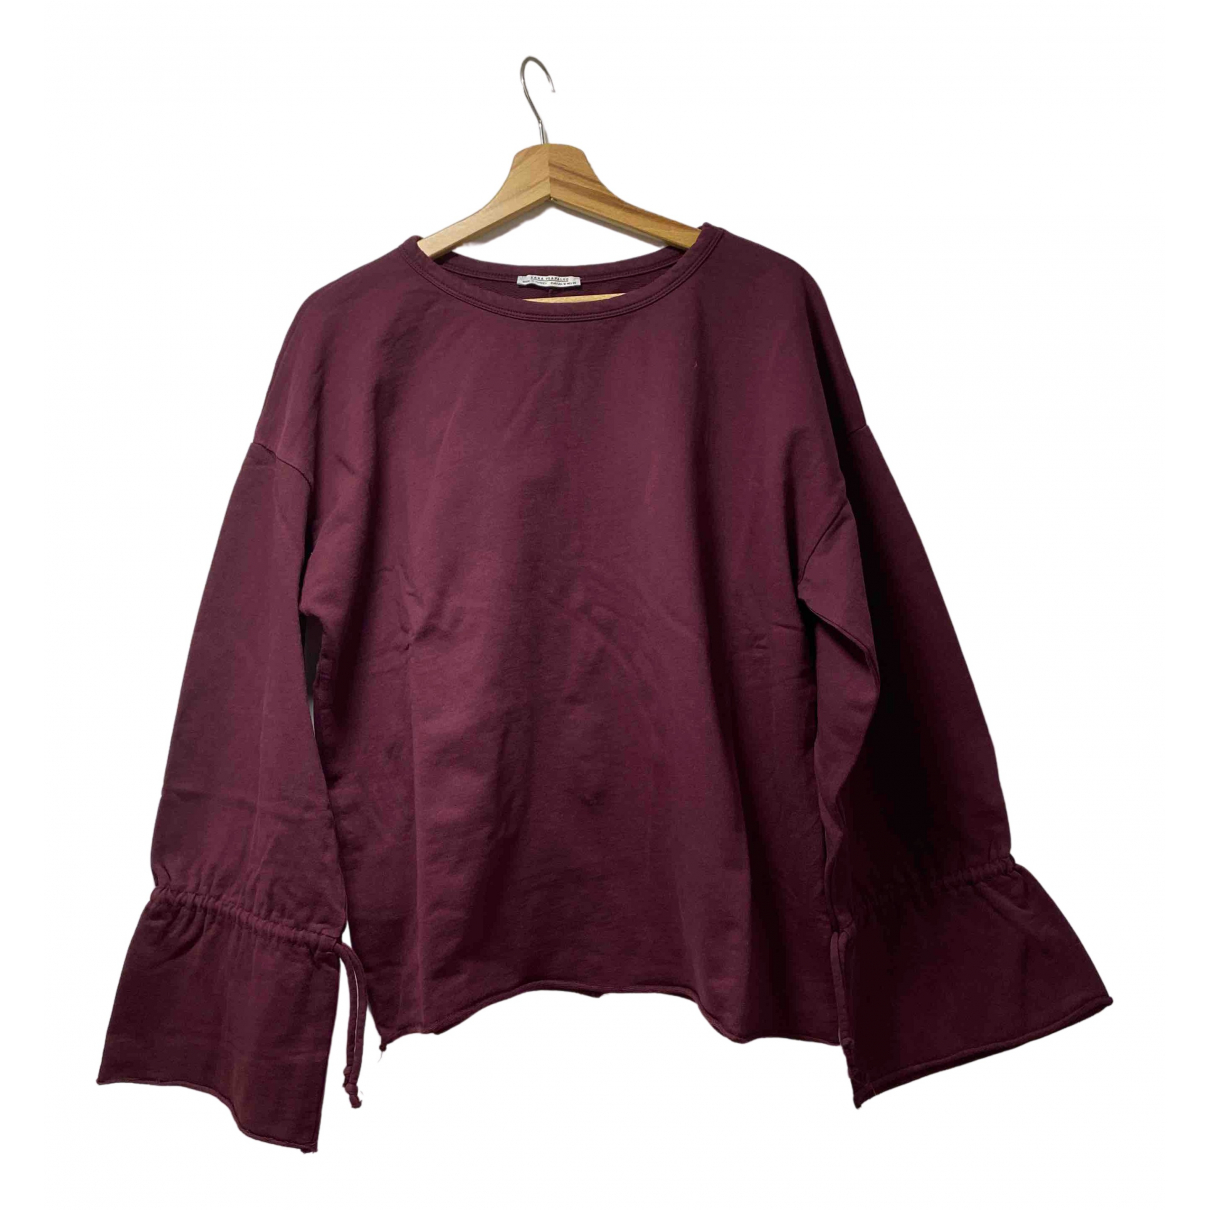 Zara \N Burgundy Cotton Knitwear for Women M International